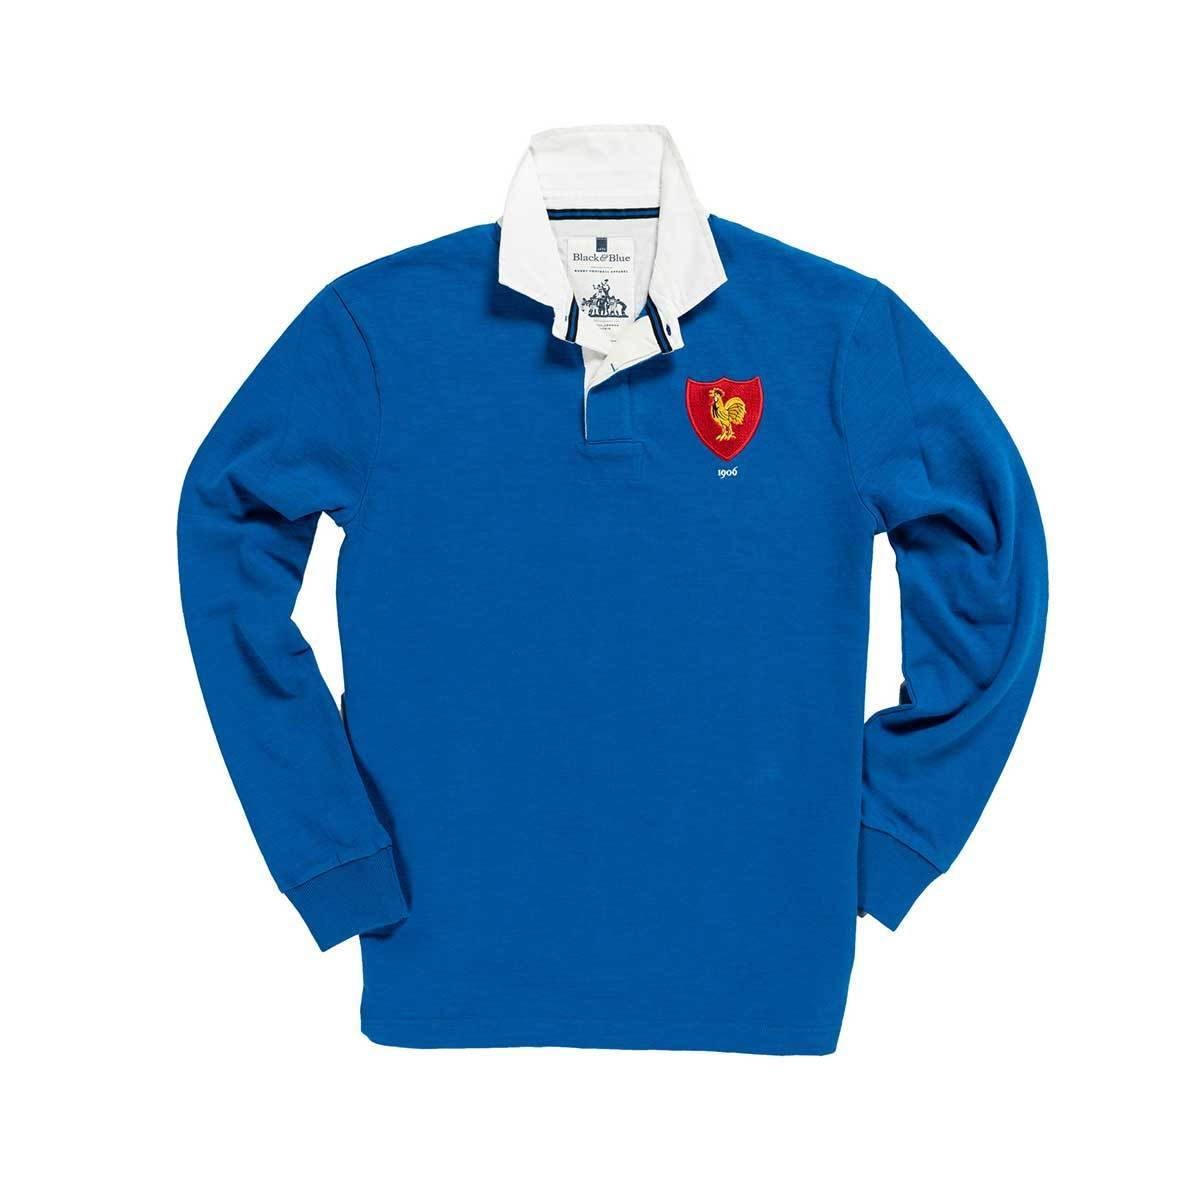 Vintage, Classic Cotton Rugby Shirt | Black & Blue 1871 | France 1906 Rugby Shirt